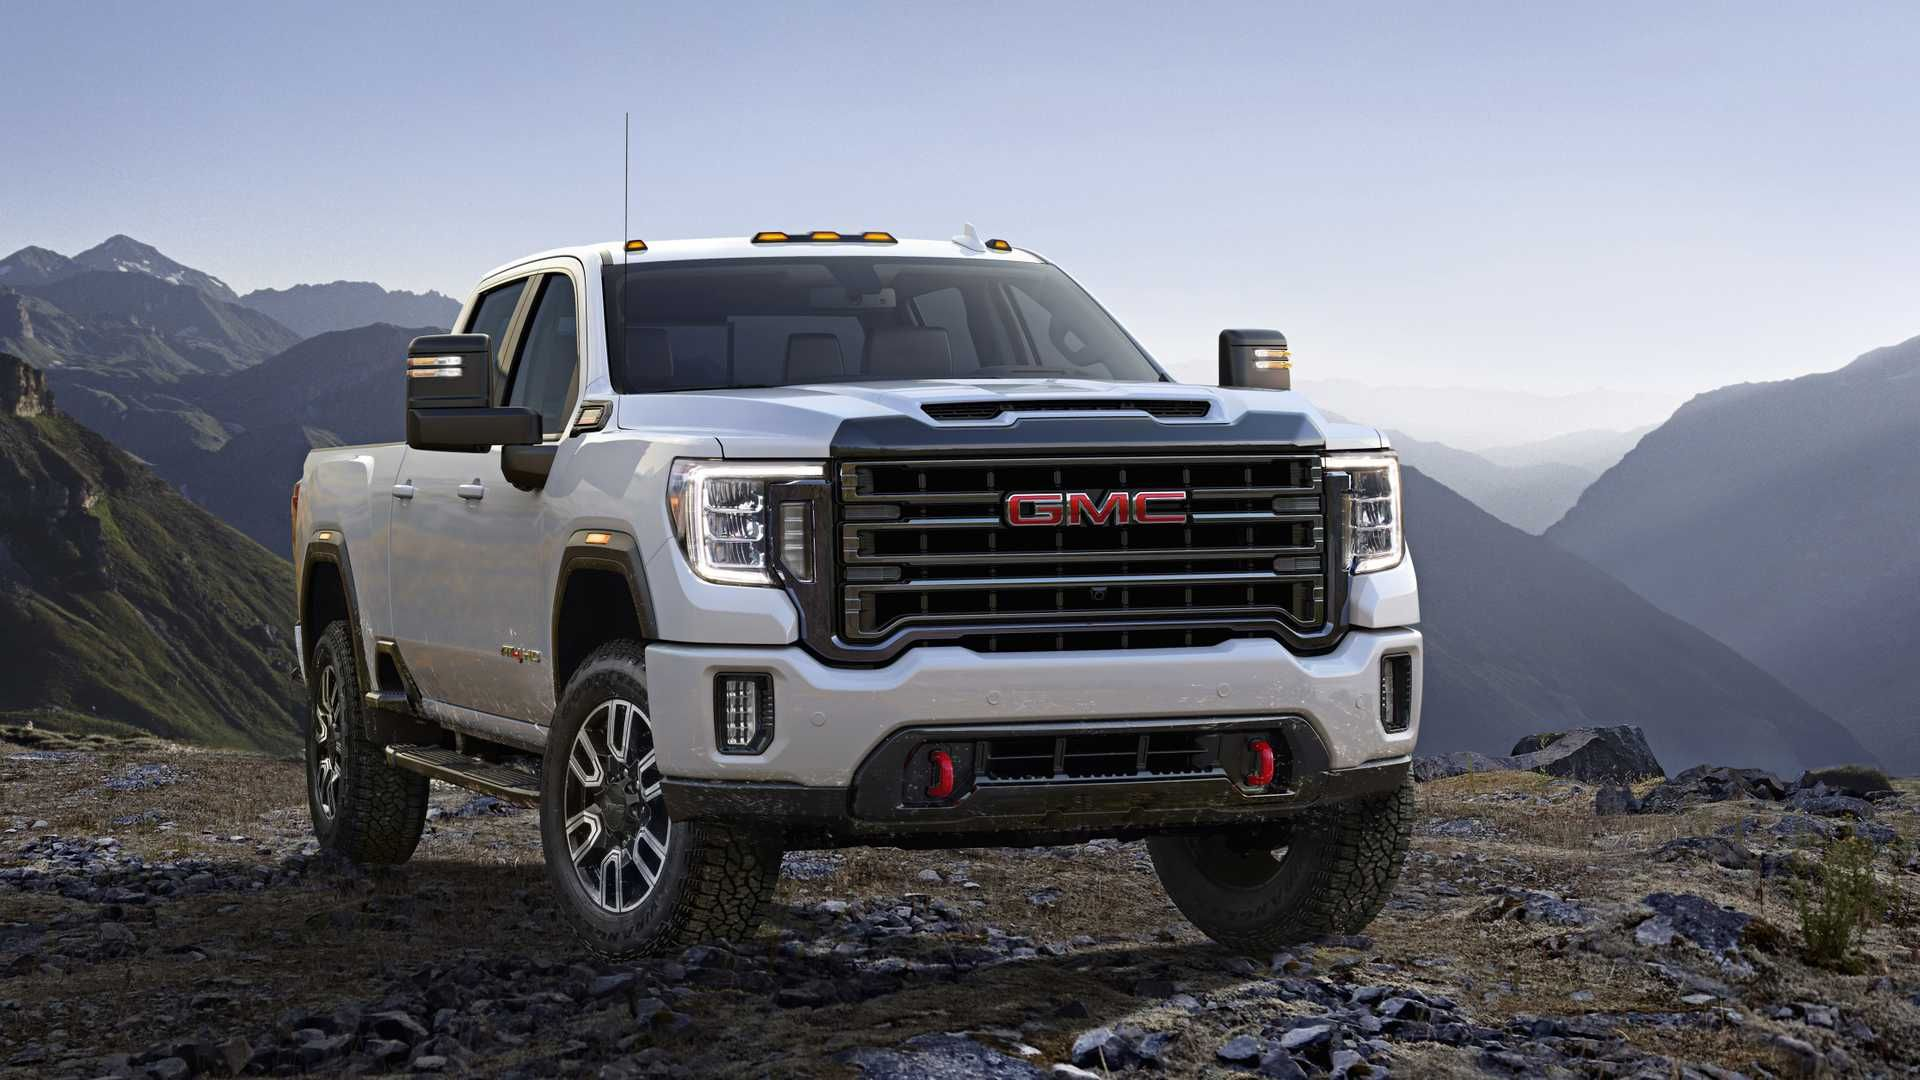 2020 Gmc Sierra Hd 2500 At4 Crew Cab Gmc 2500 Gmc Trucks Gmc